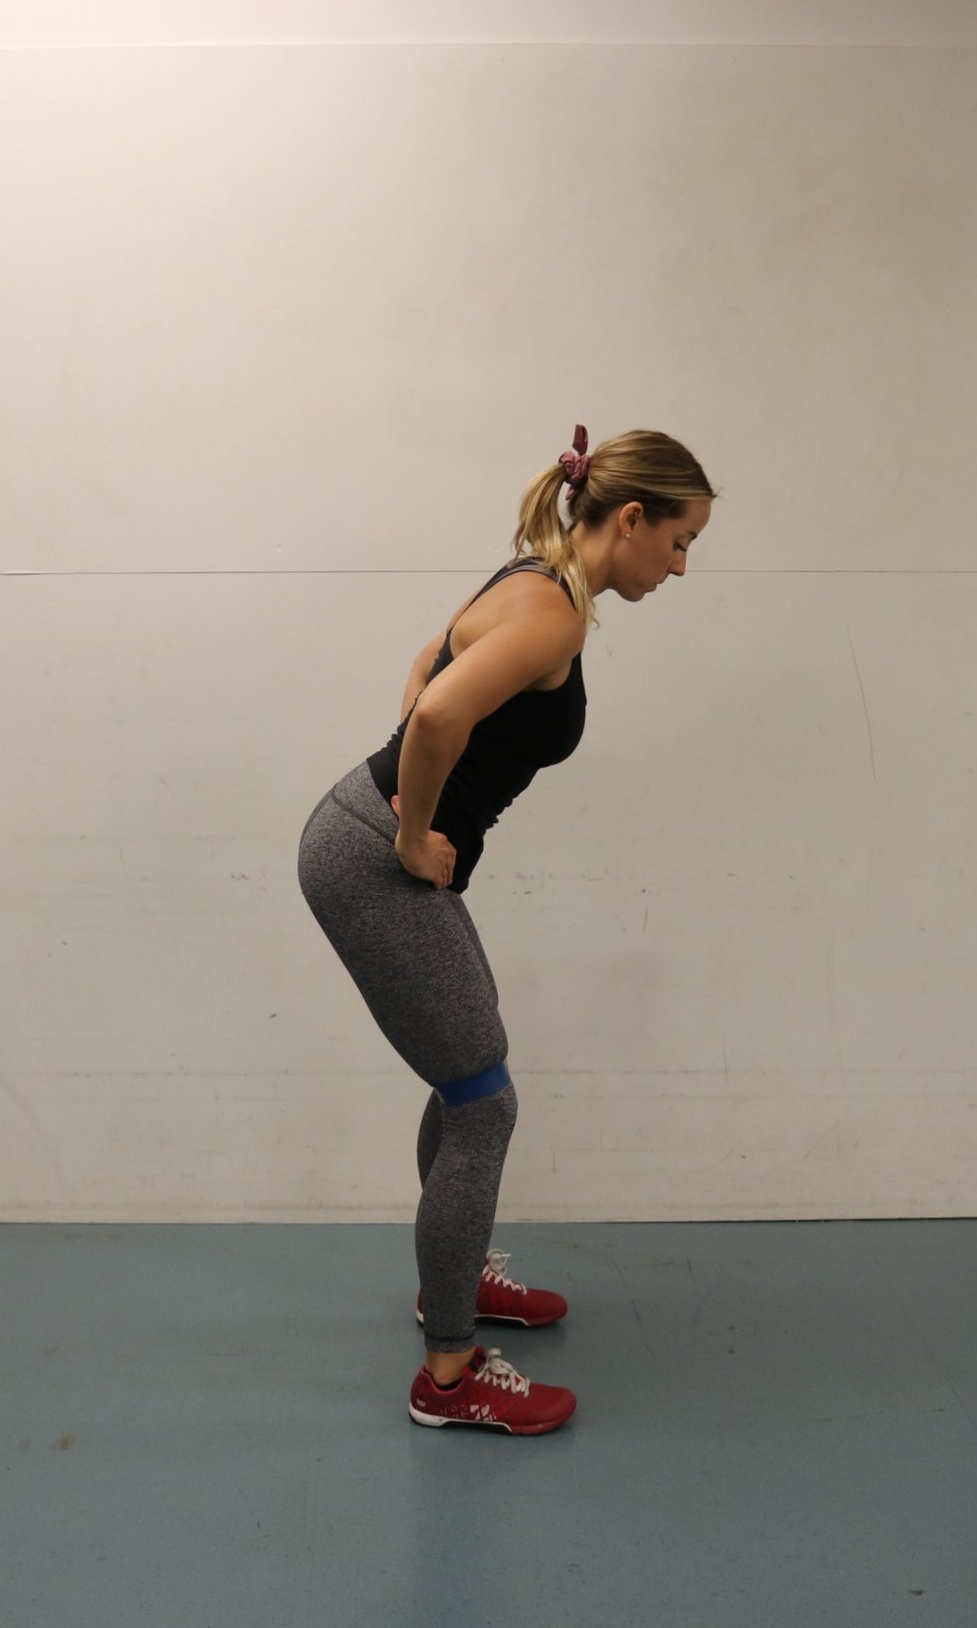 Maintain hip hinge position throughout